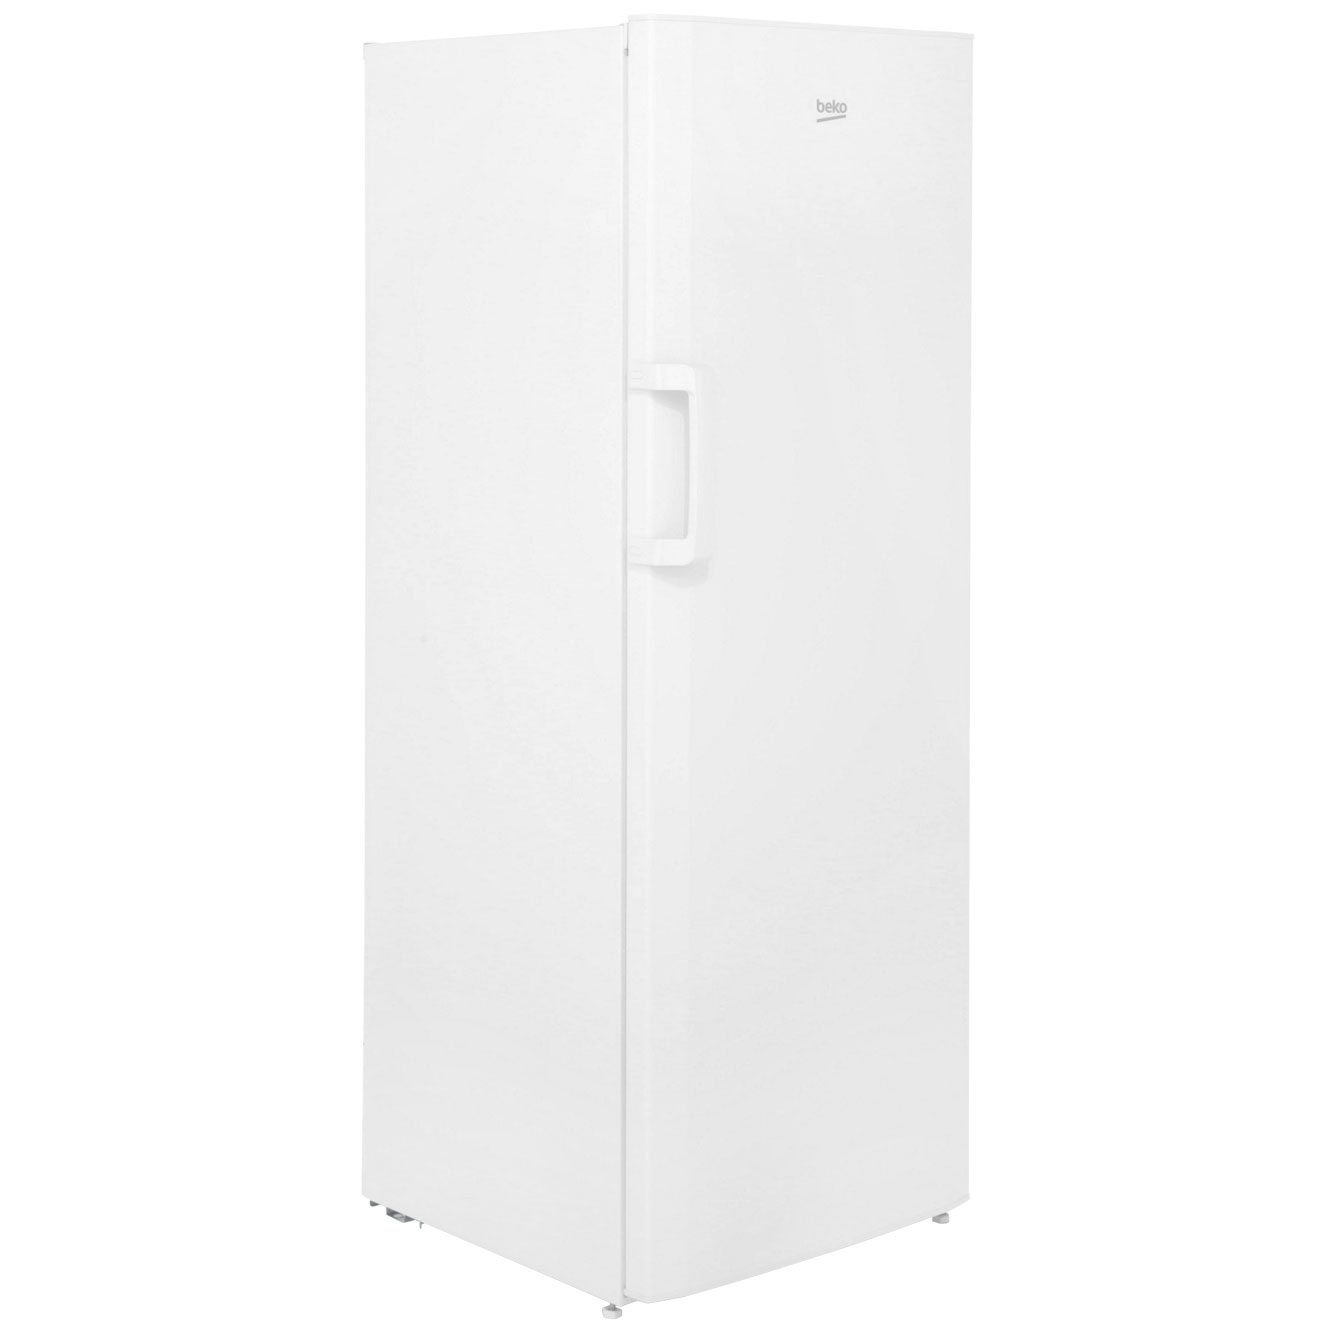 igloo 6.5 upright freezer reviews